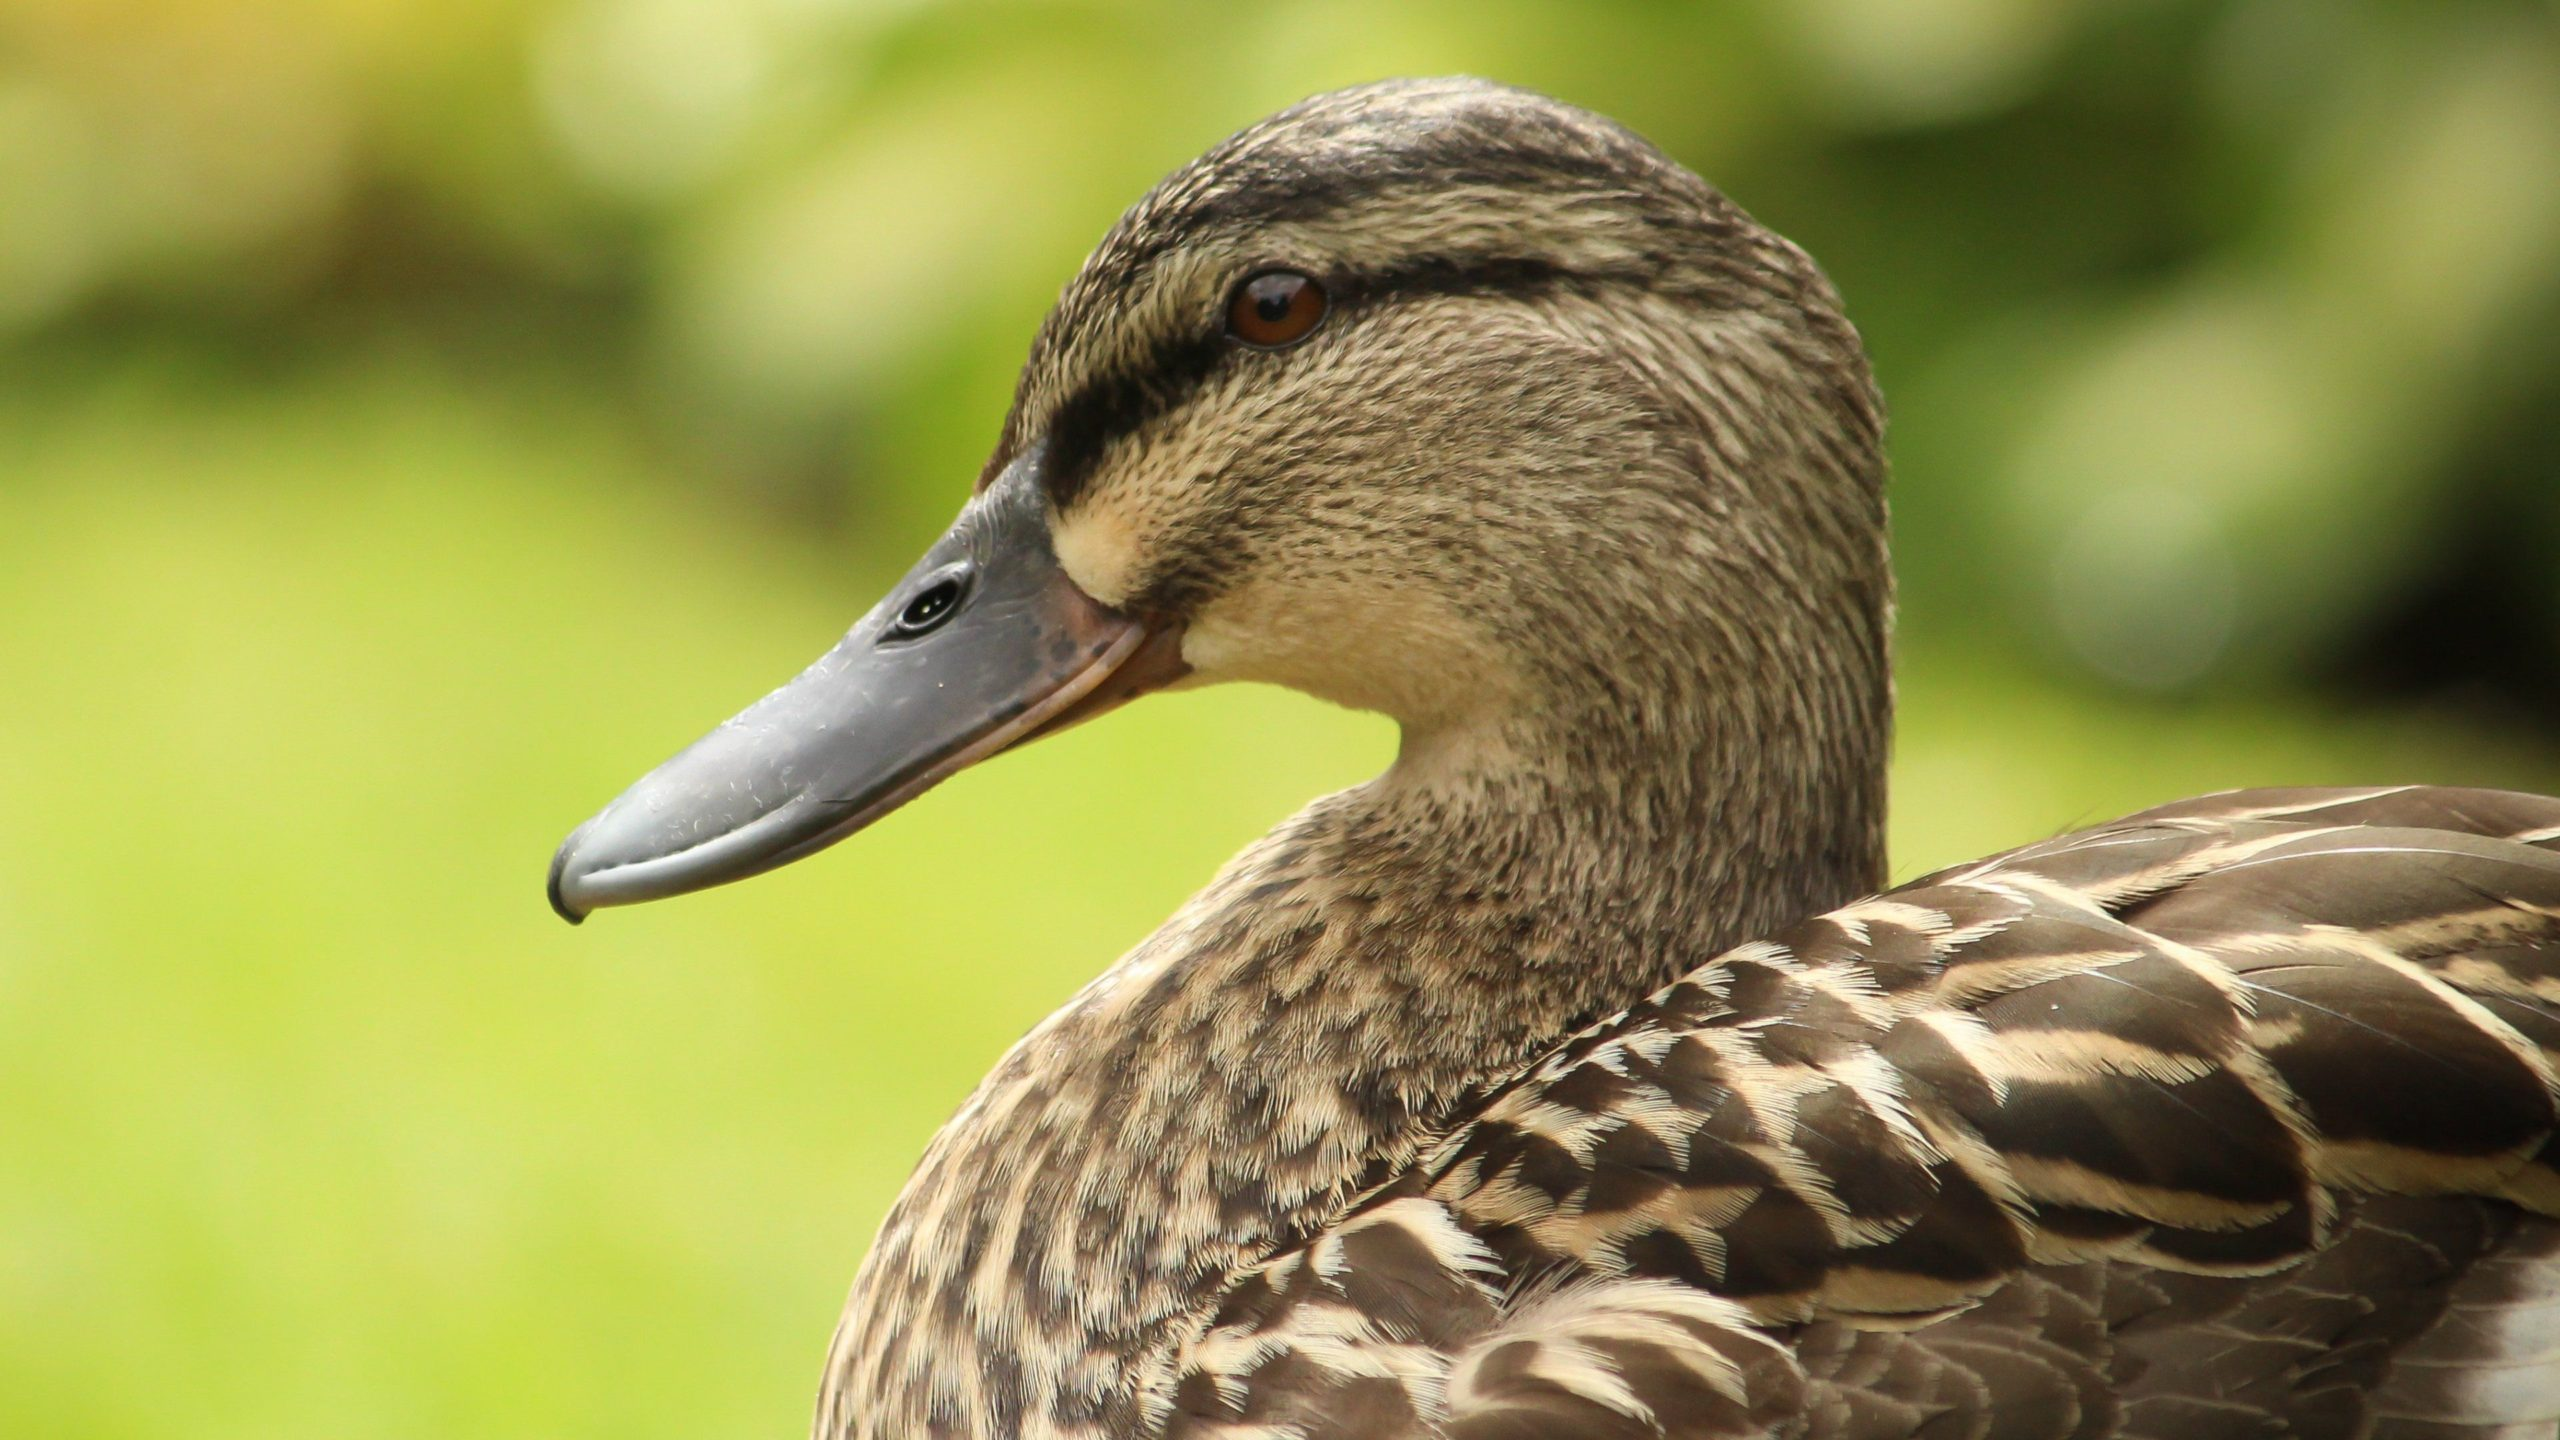 duck images free